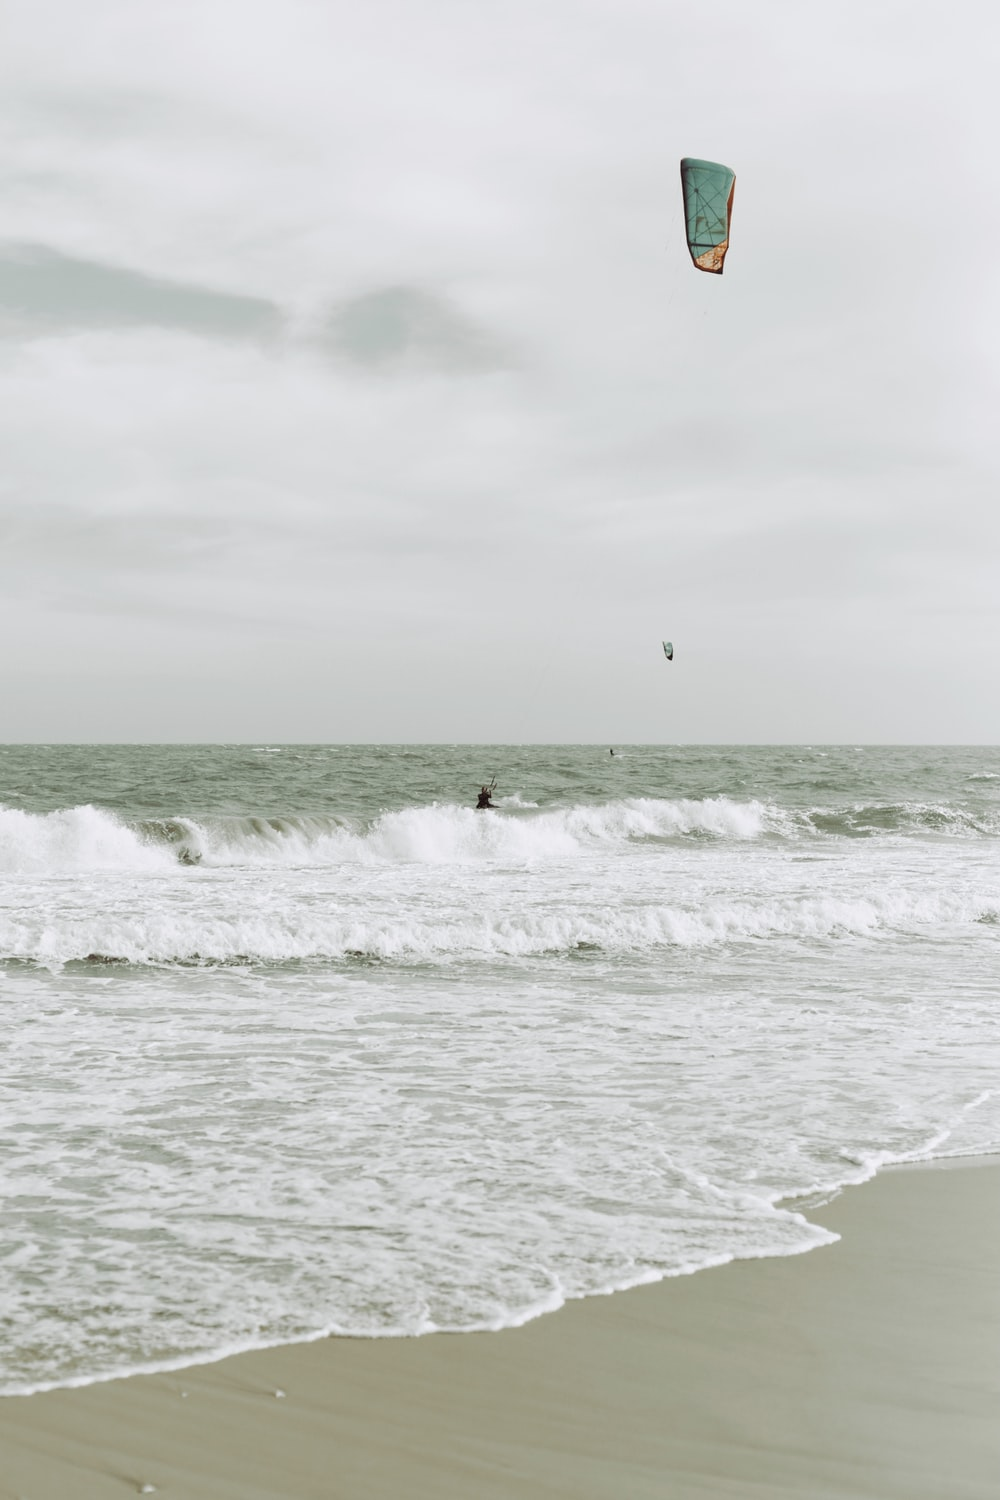 person in red and yellow parachute over sea waves during daytime